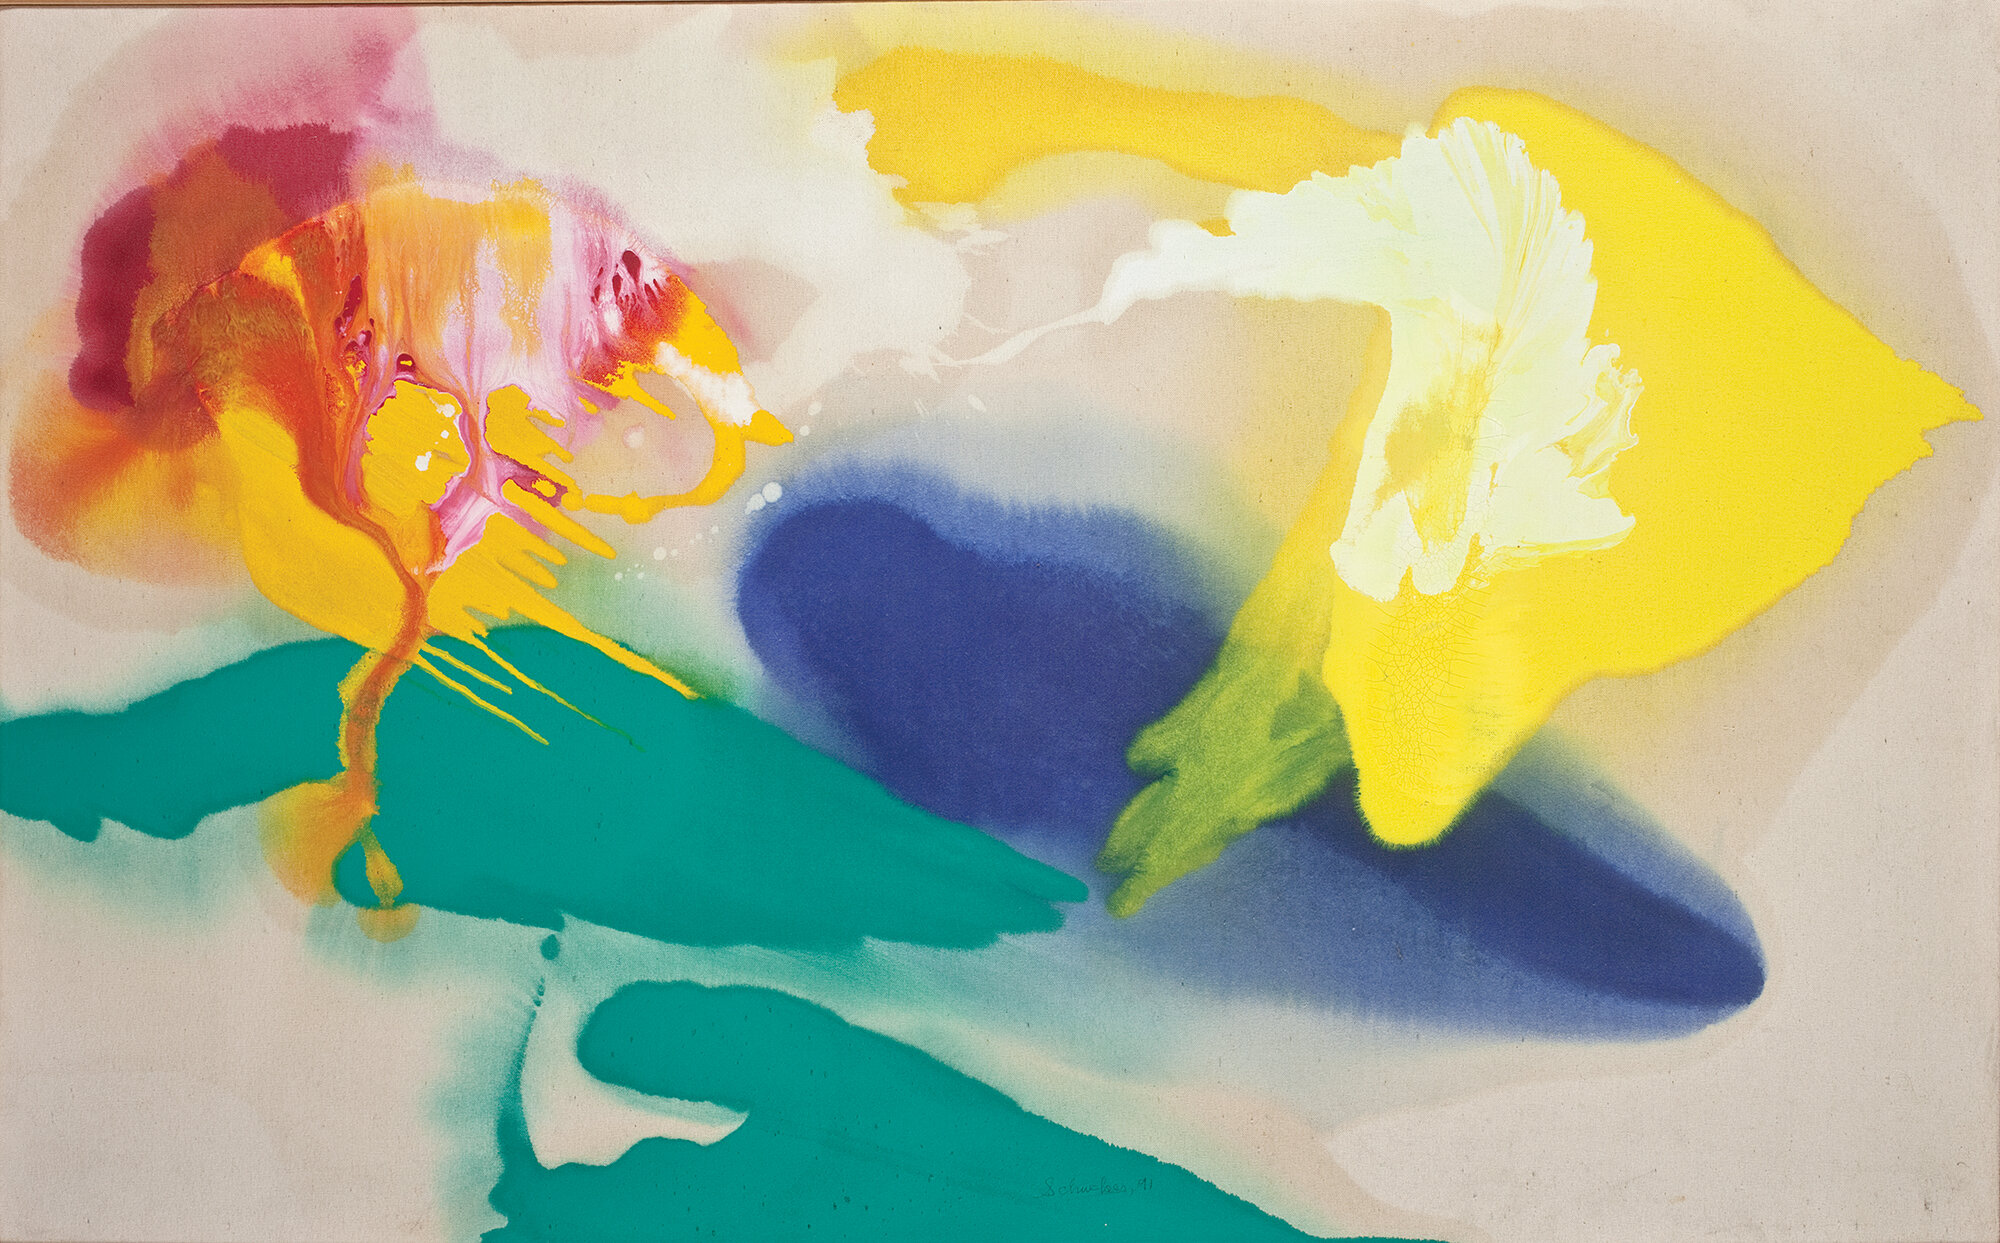 """9174 The Islands, 1991, Oil on Canvas, 36"""" x 58""""  Poured paint colorfield painting with yellow, blue, green, red on unprimed canvas"""